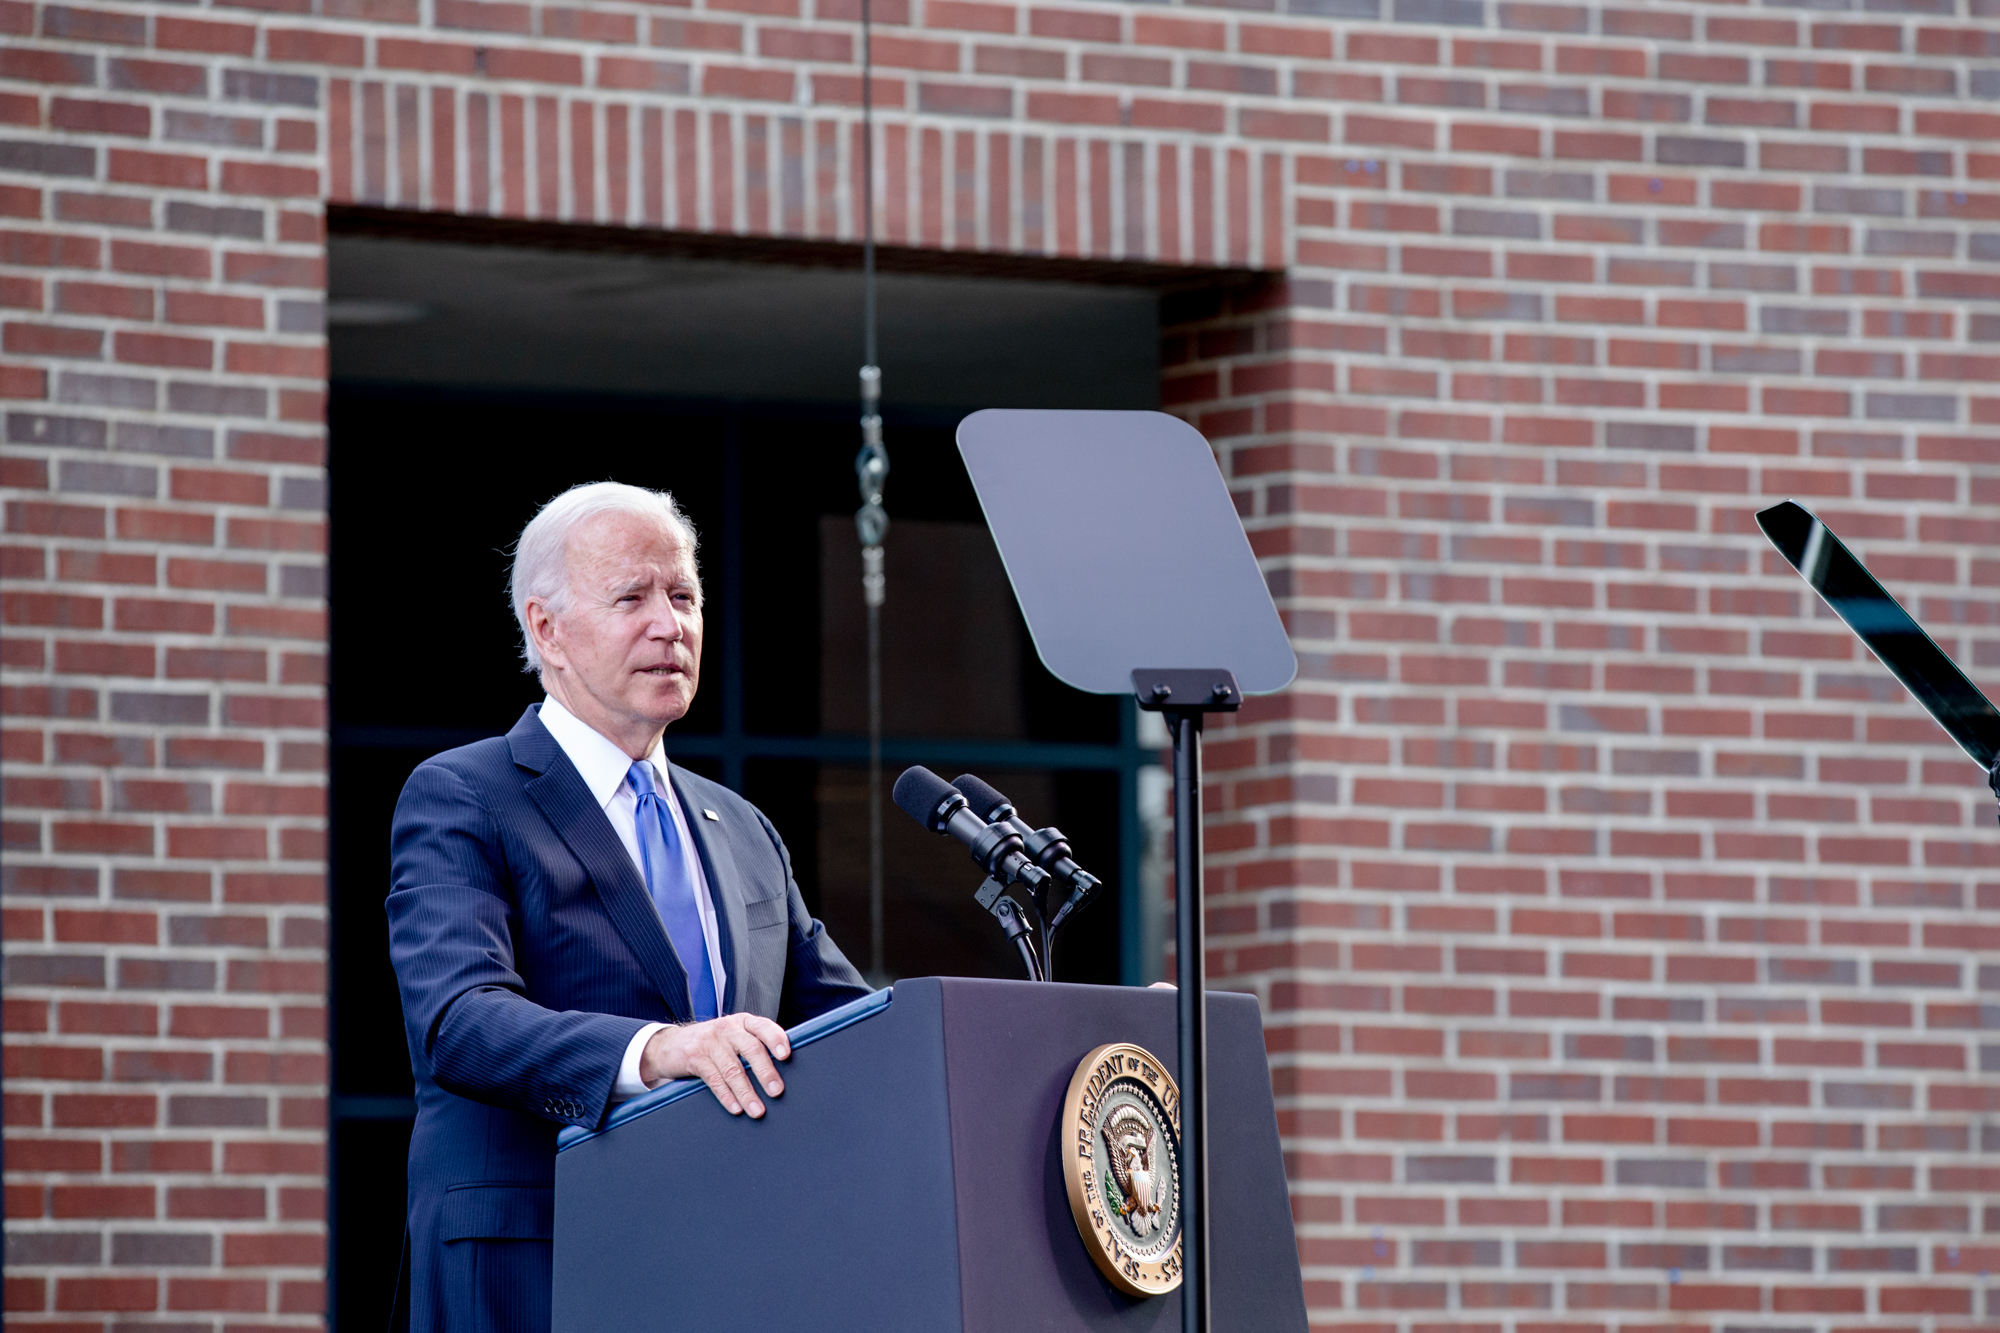 President Joe Biden comes to Connecticut for a friend, and human rights